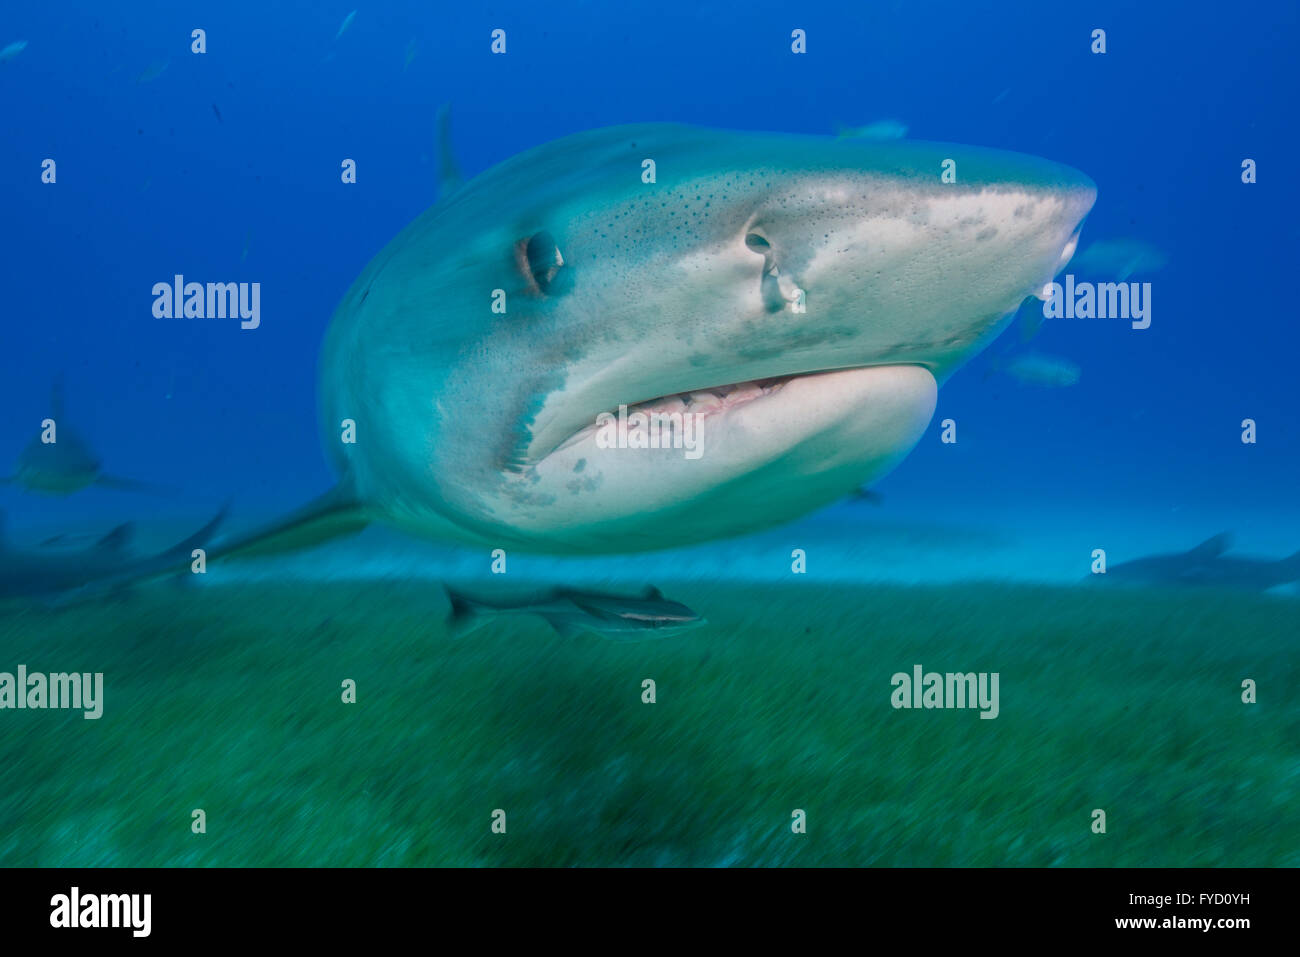 Tiger shark, Galeocerdo cuvier, swimming over seagrass, Bahamas - Stock Image